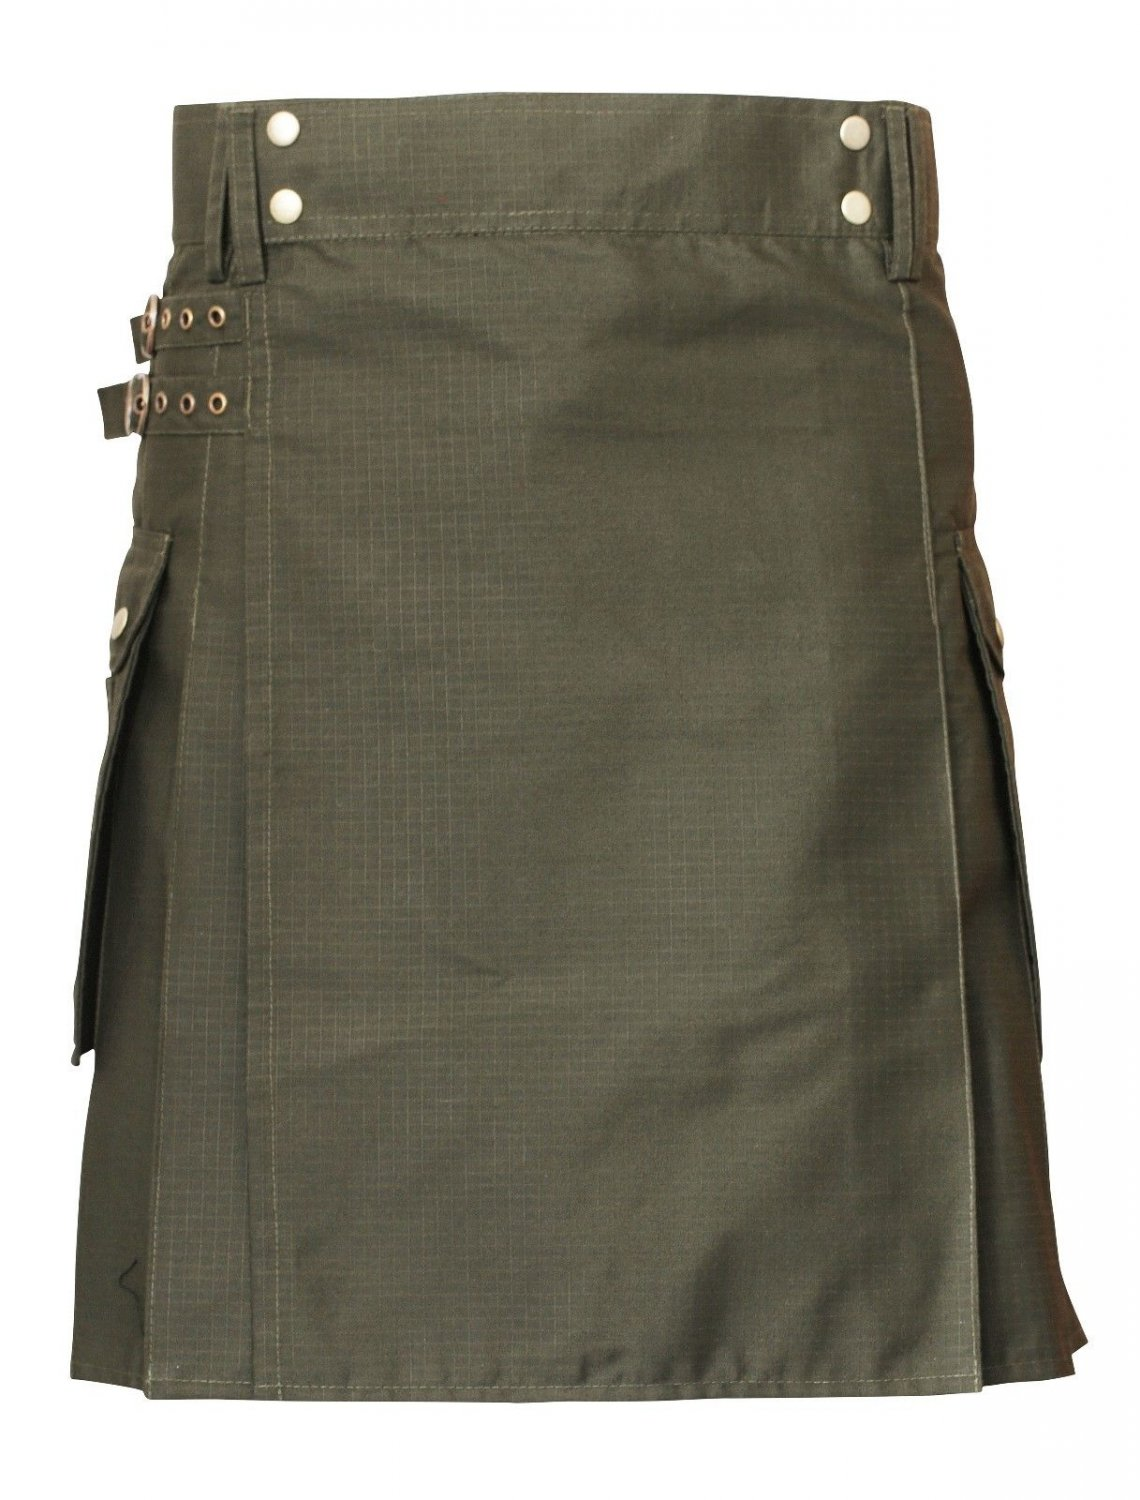 30 Size Traditional Scottish Utility Heavy Rip Stop Cotton Kilt Olive Green Cotton Deluxe Kilt